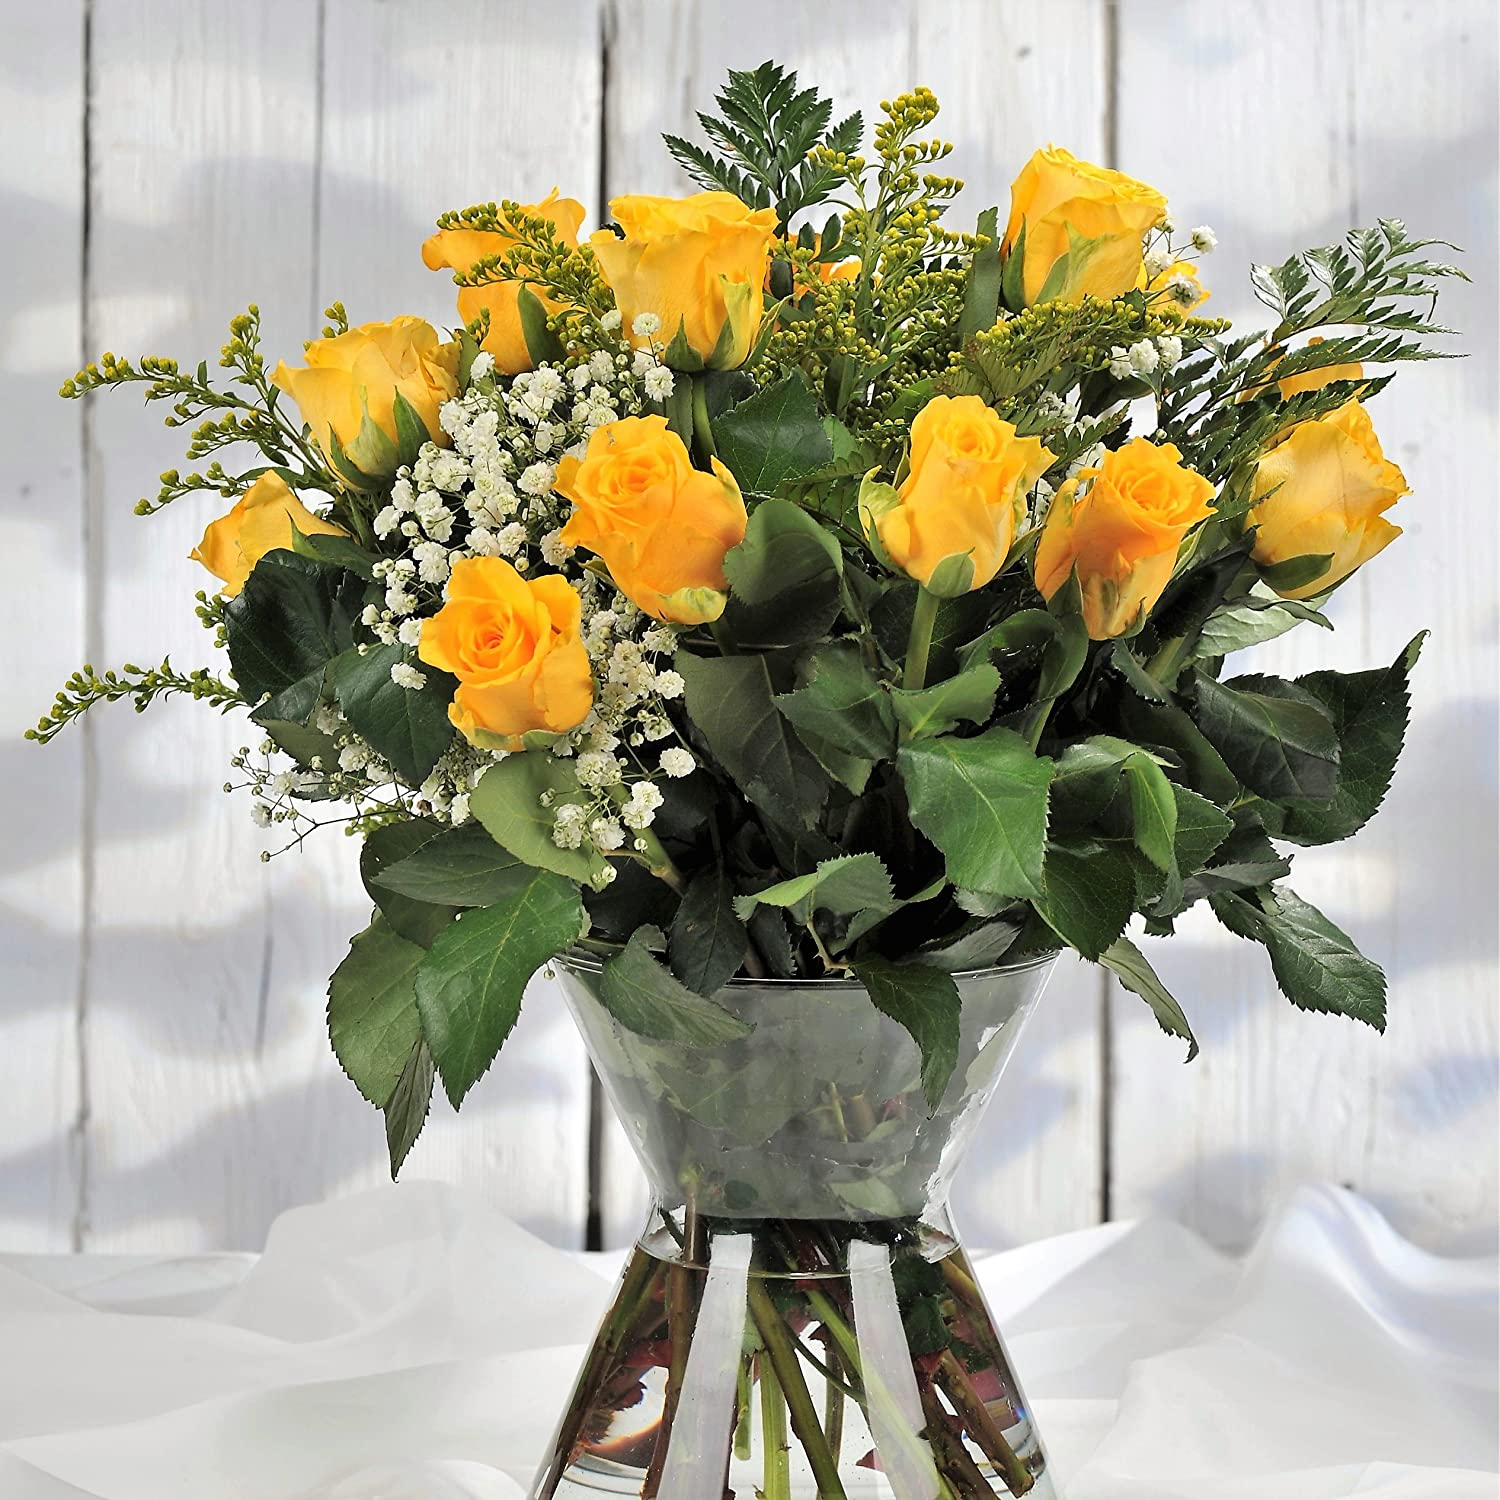 Dozen Yellow Fresh Rose Flower Bouquet - Flowers Delivered FREE Next Day UK Within 1hr TimeSlot 7 Days a Week- Send a Bunch for Special Birthday Homeland Florists